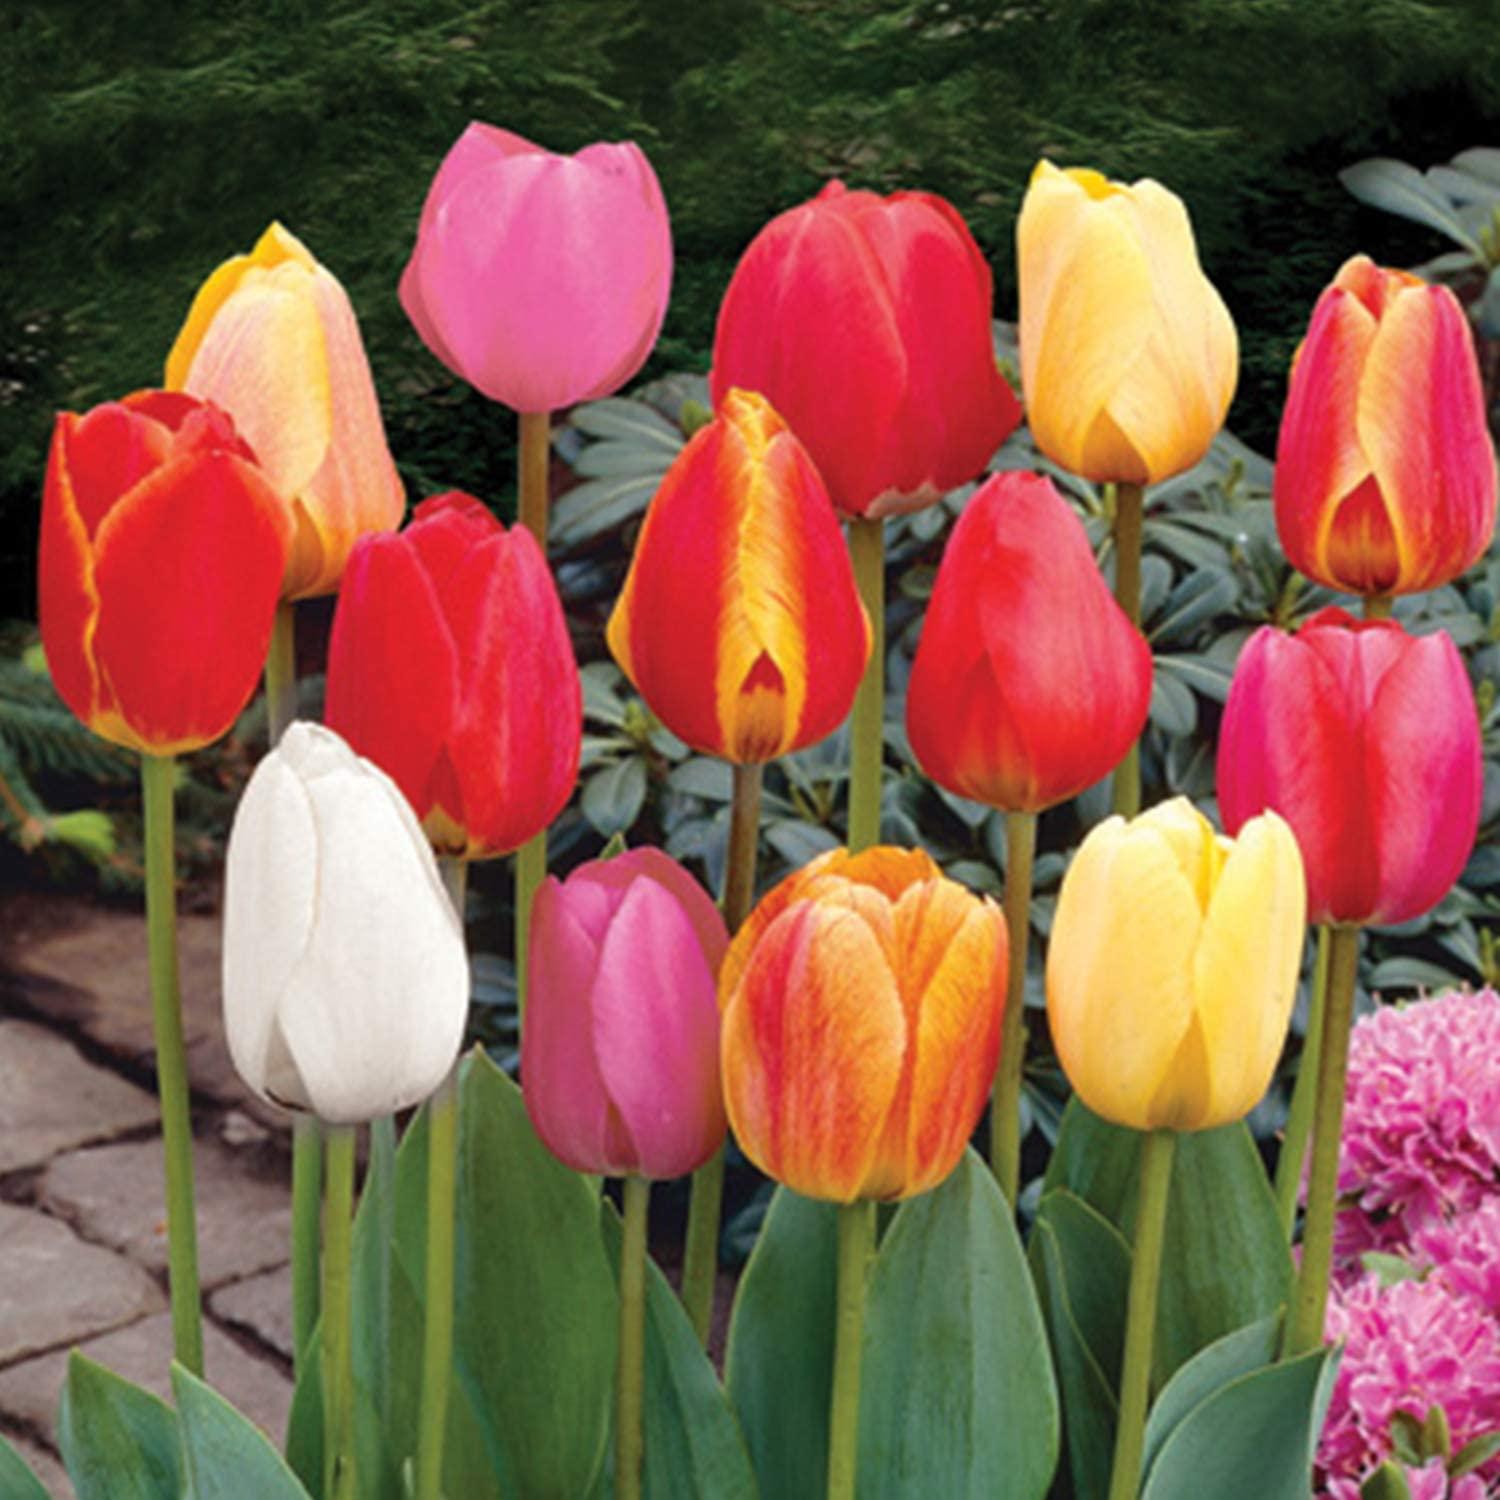 Burpee Perennial Tulip Mix | 20 Large Flowering Fall Bulbs for Planting, Multiple Colors